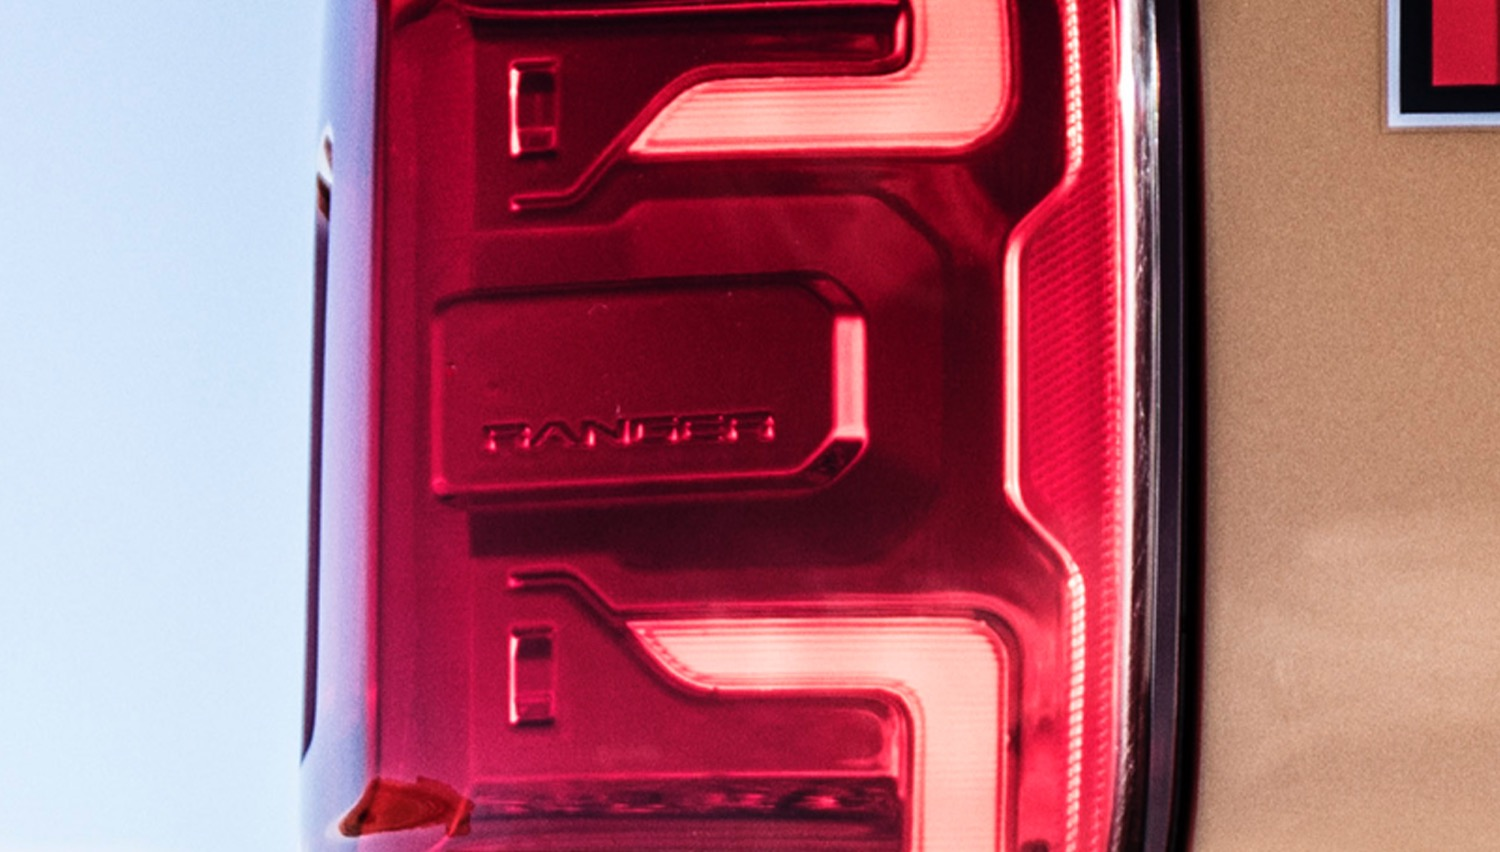 hight resolution of you ll also notice that the lowest portion of the 2019 ford ranger taillights features a radar like logo that s ford s way of reminding us that the truck